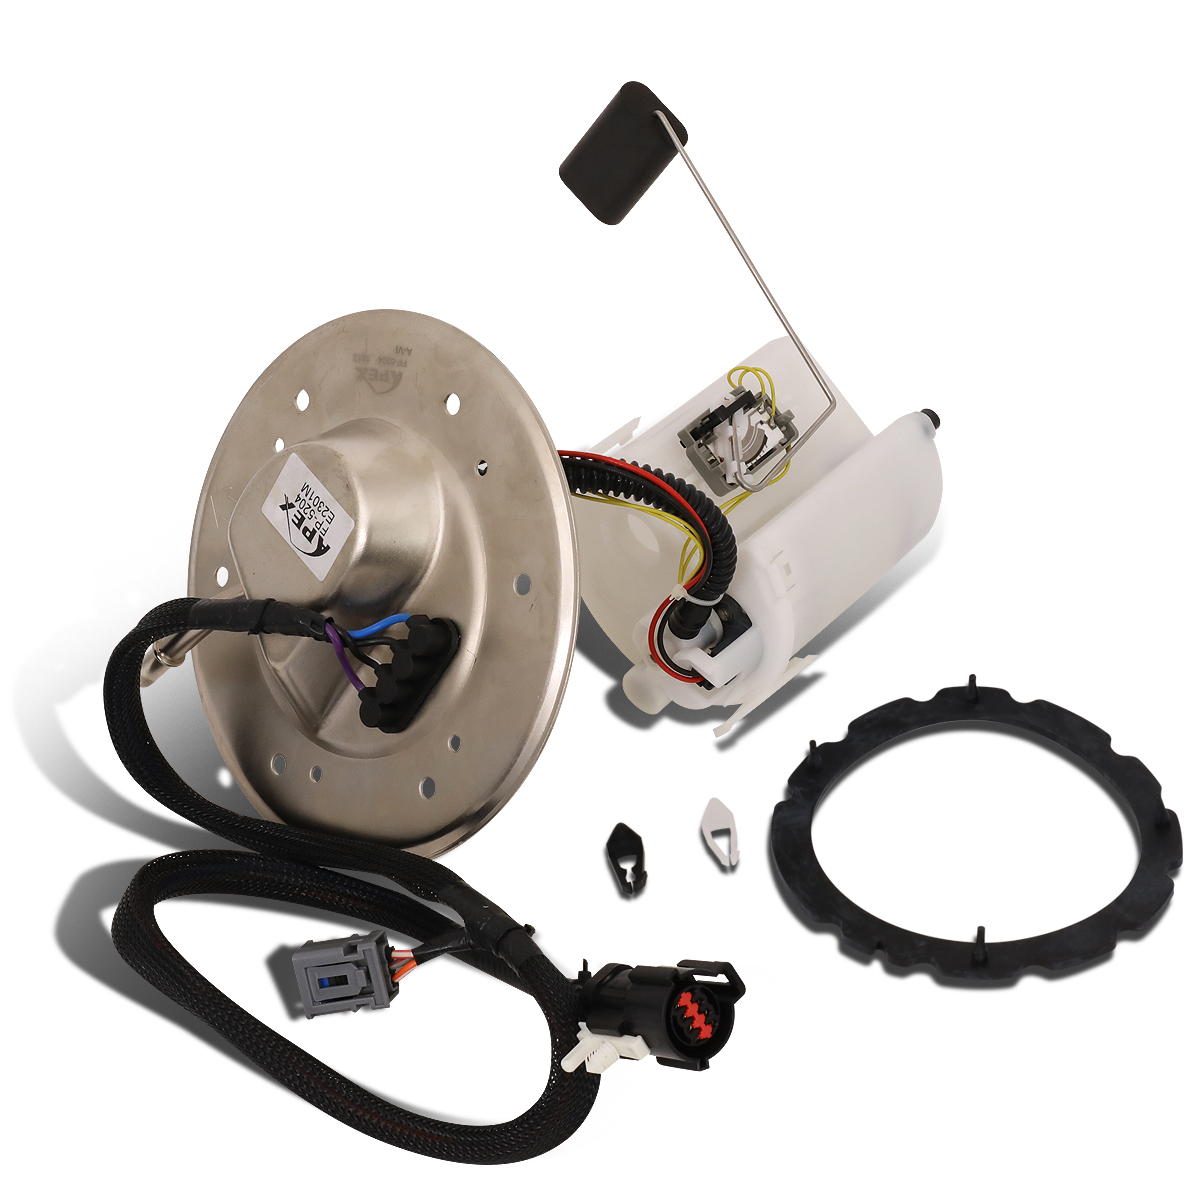 2001 Ford Mustang Fuel Pump